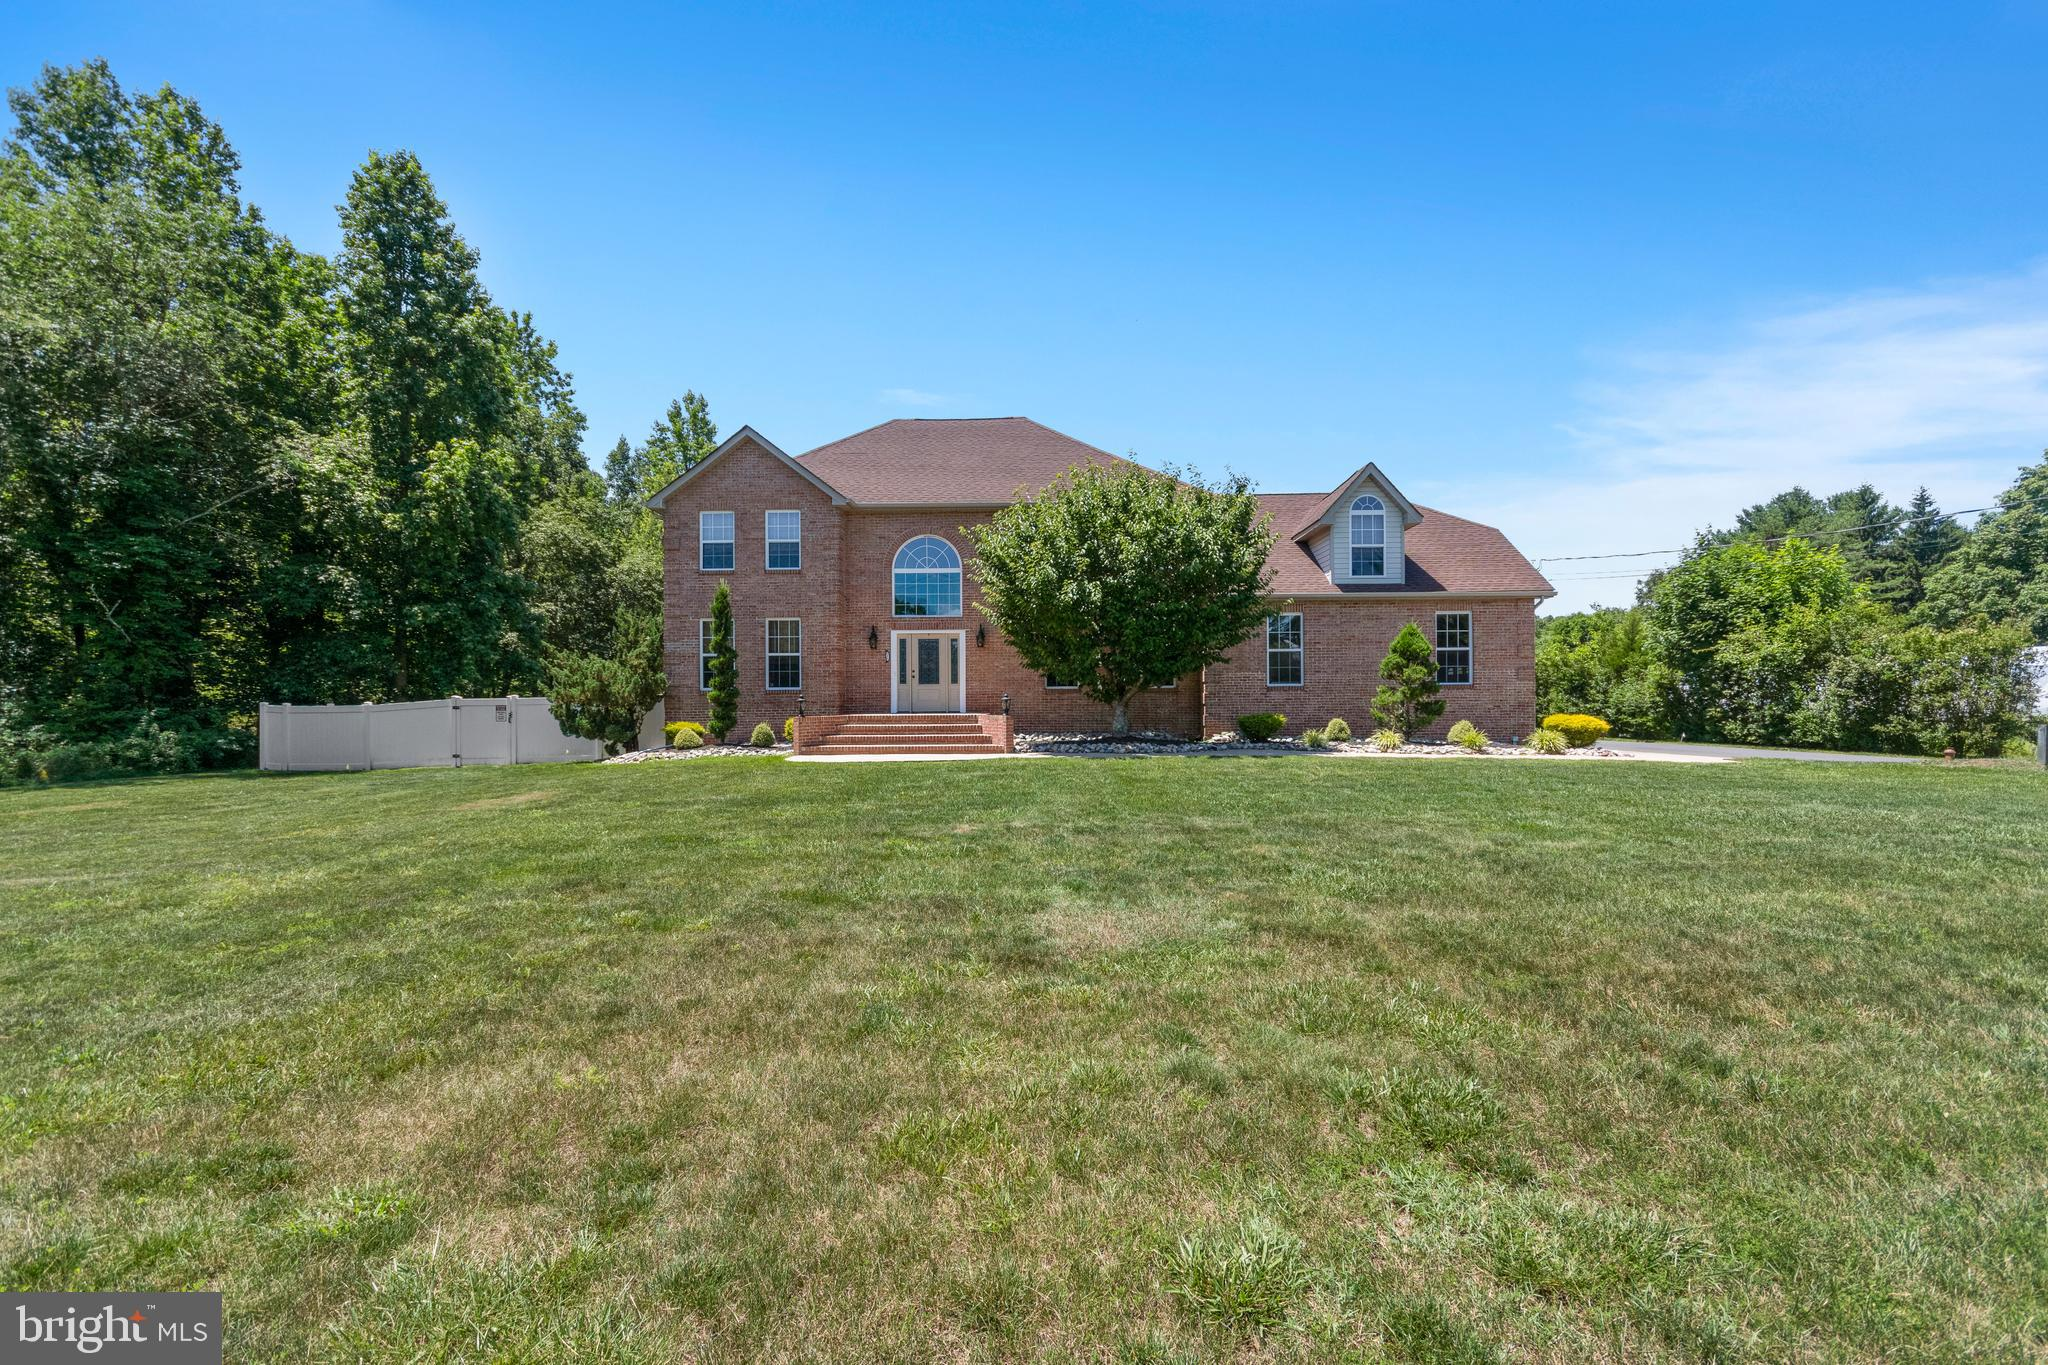 710 TUCKAHOE ROAD, VINELAND, NJ 08360